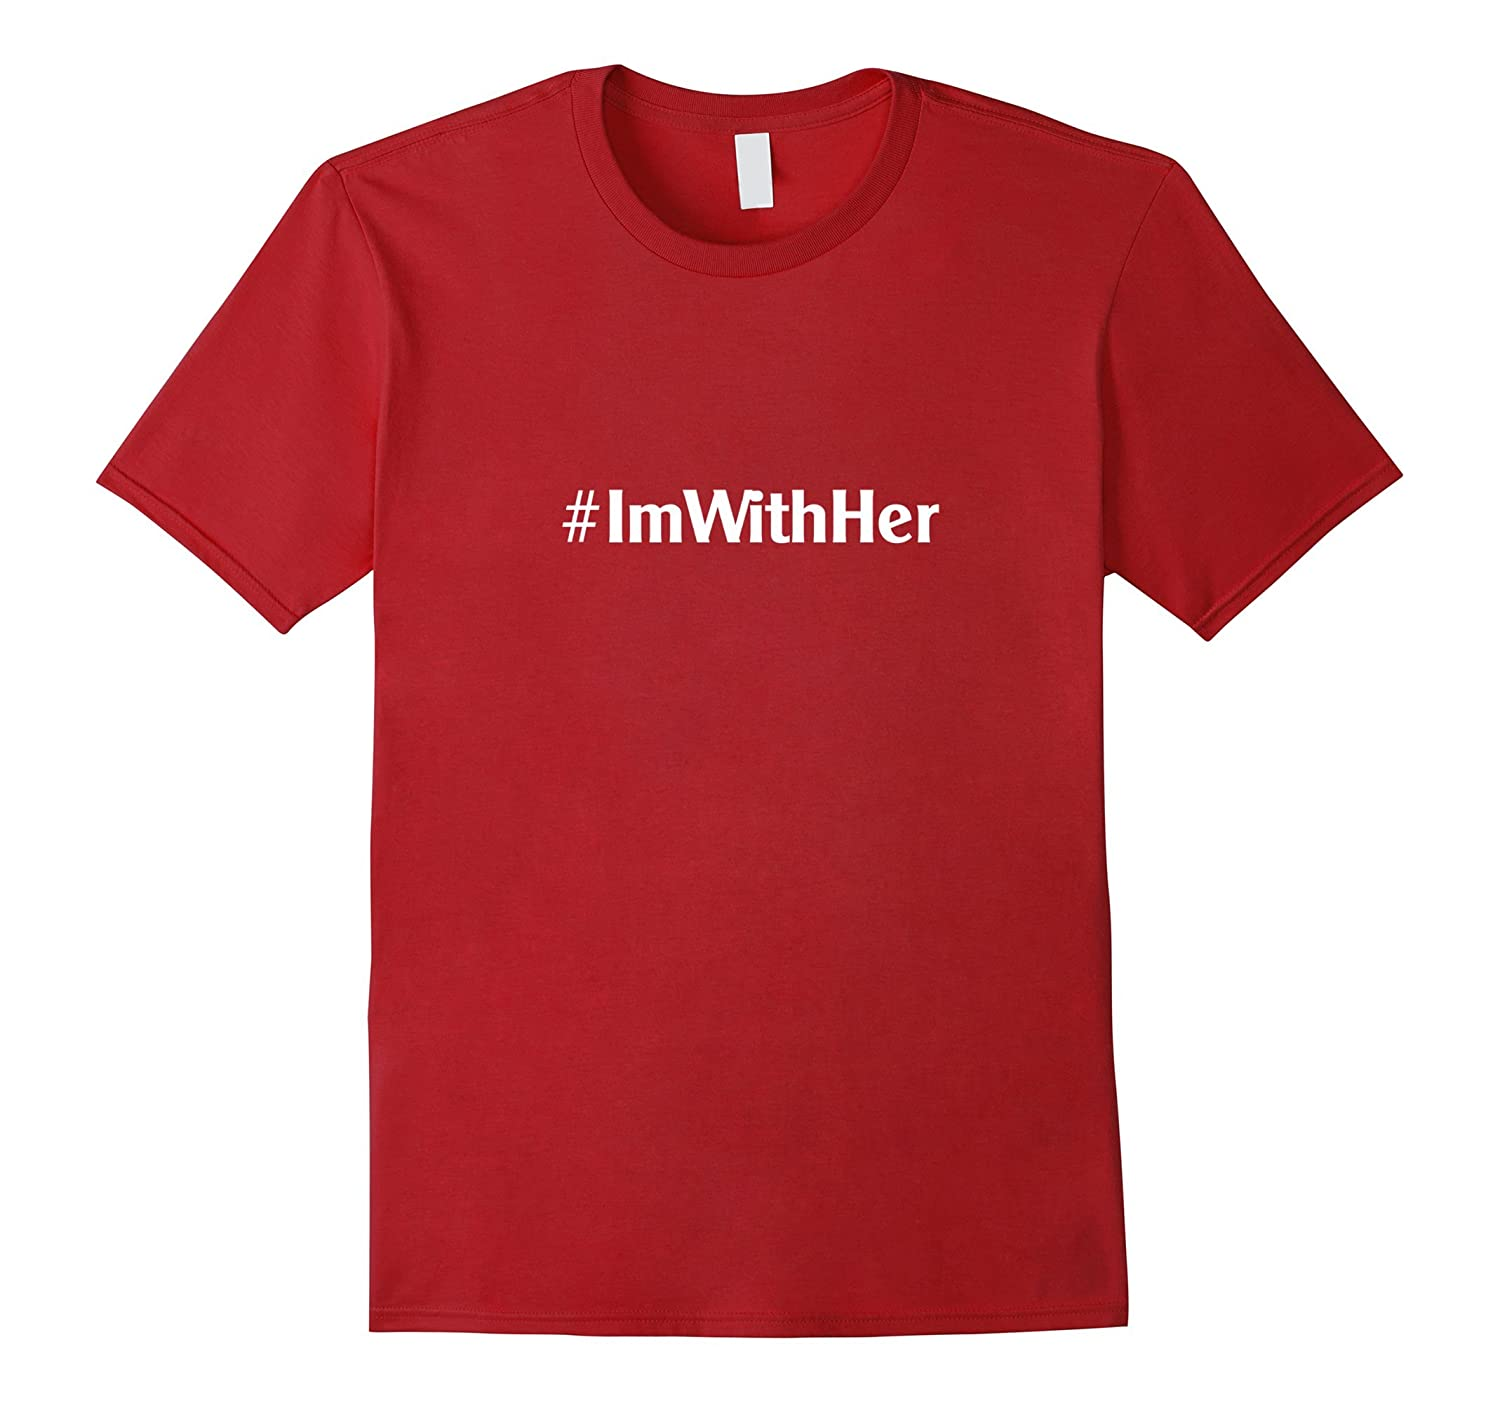 #ImWithHer - Im with her t-shirt-BN